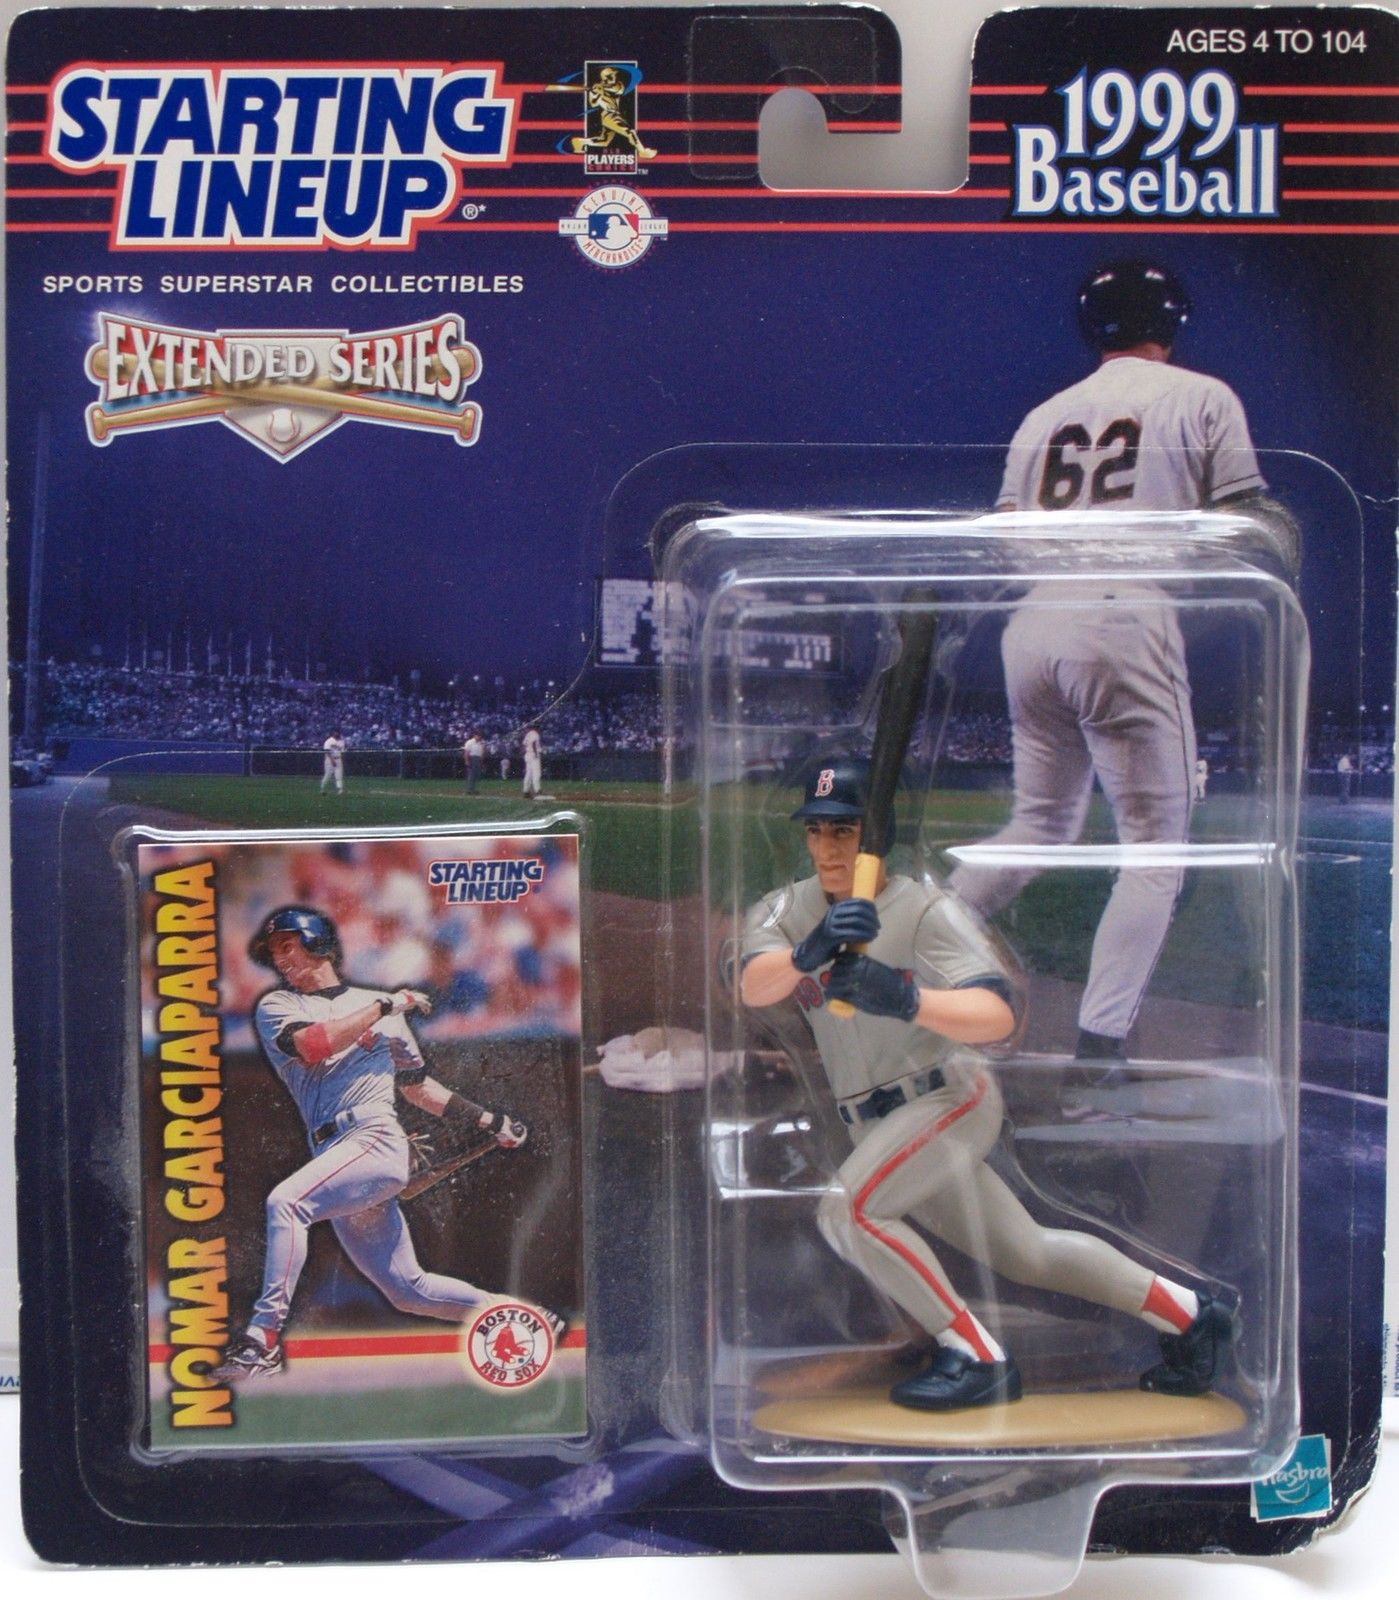 1999 STARTING LINEUP ACTION FIGURE - NOMAR GARCIAPARRA - BOSTON RED SOX